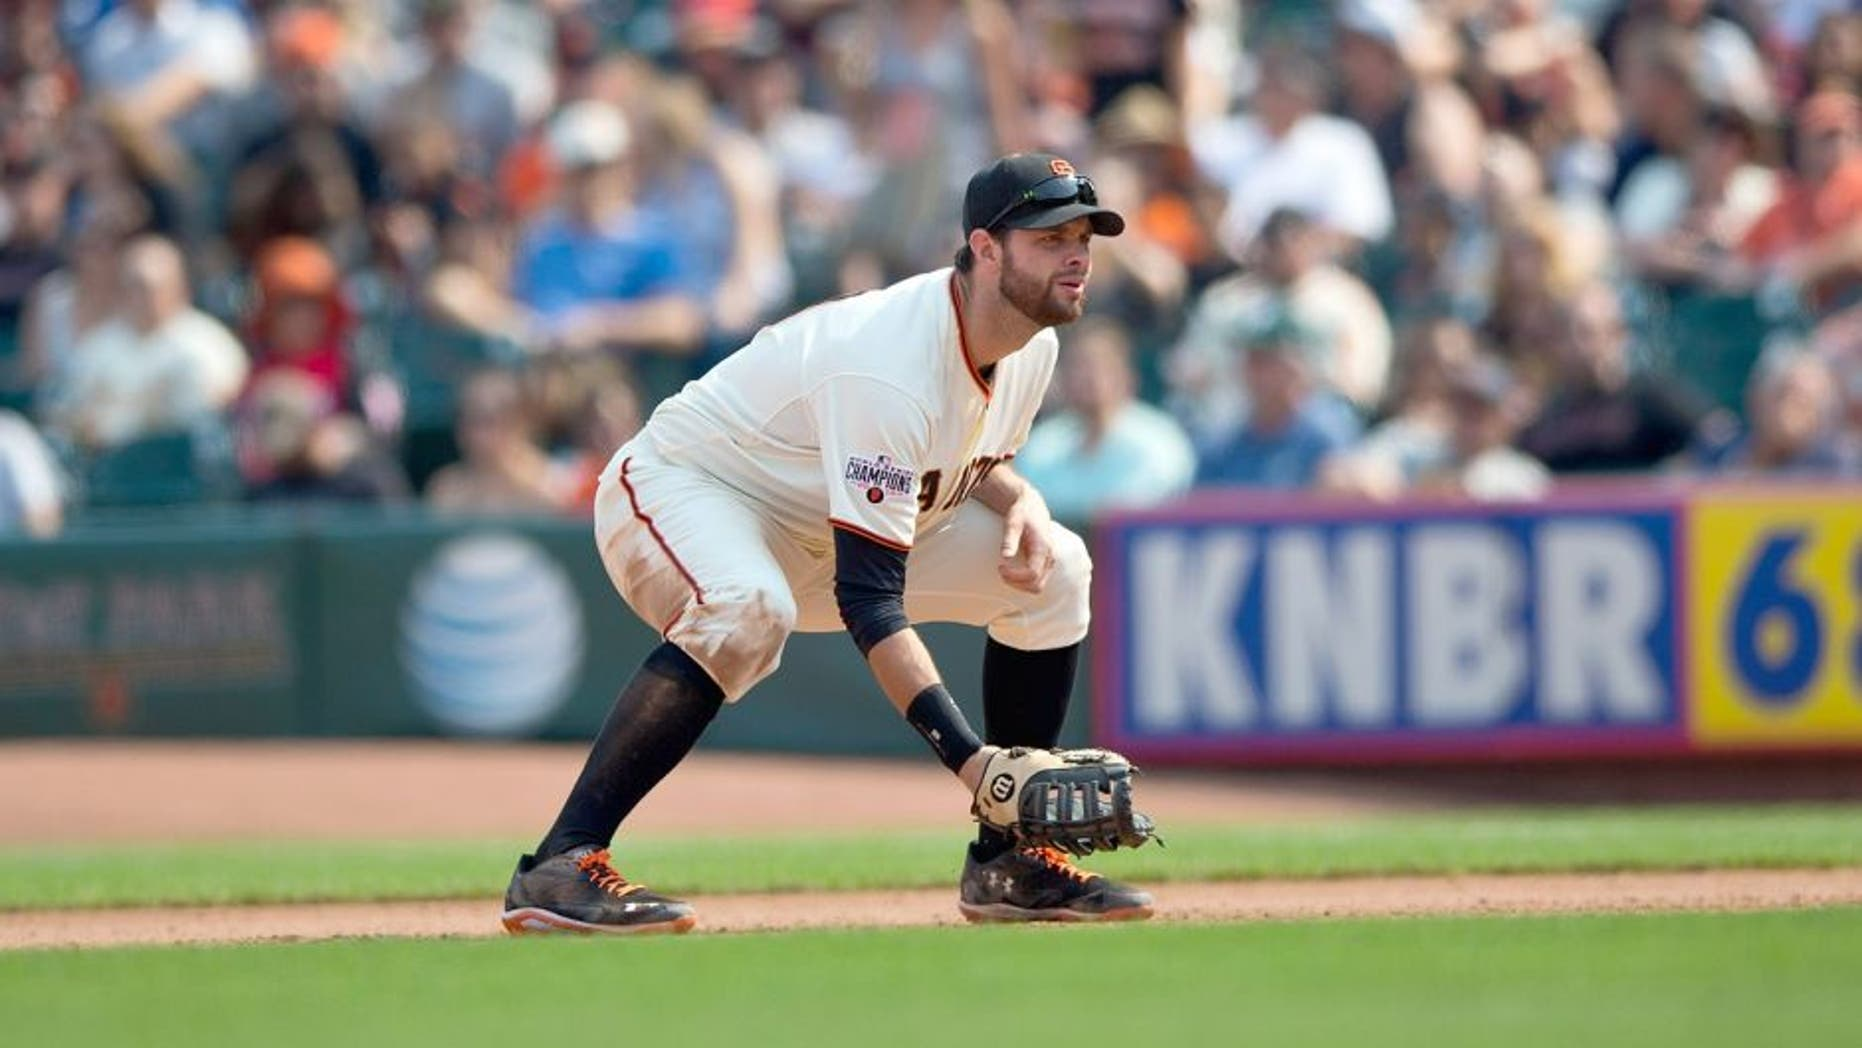 SAN FRANCISCO, CA - SEPTEMBER 13: Brandon Belt #9 of the San Francisco Giants stands on the field against the San Diego Padres during the seventh inning at AT&T Park on September 13, 2015 in San Francisco, California. The San Francisco Giants defeated the San Diego Padres 10-3. (Photo by Jason O. Watson/Getty Images)